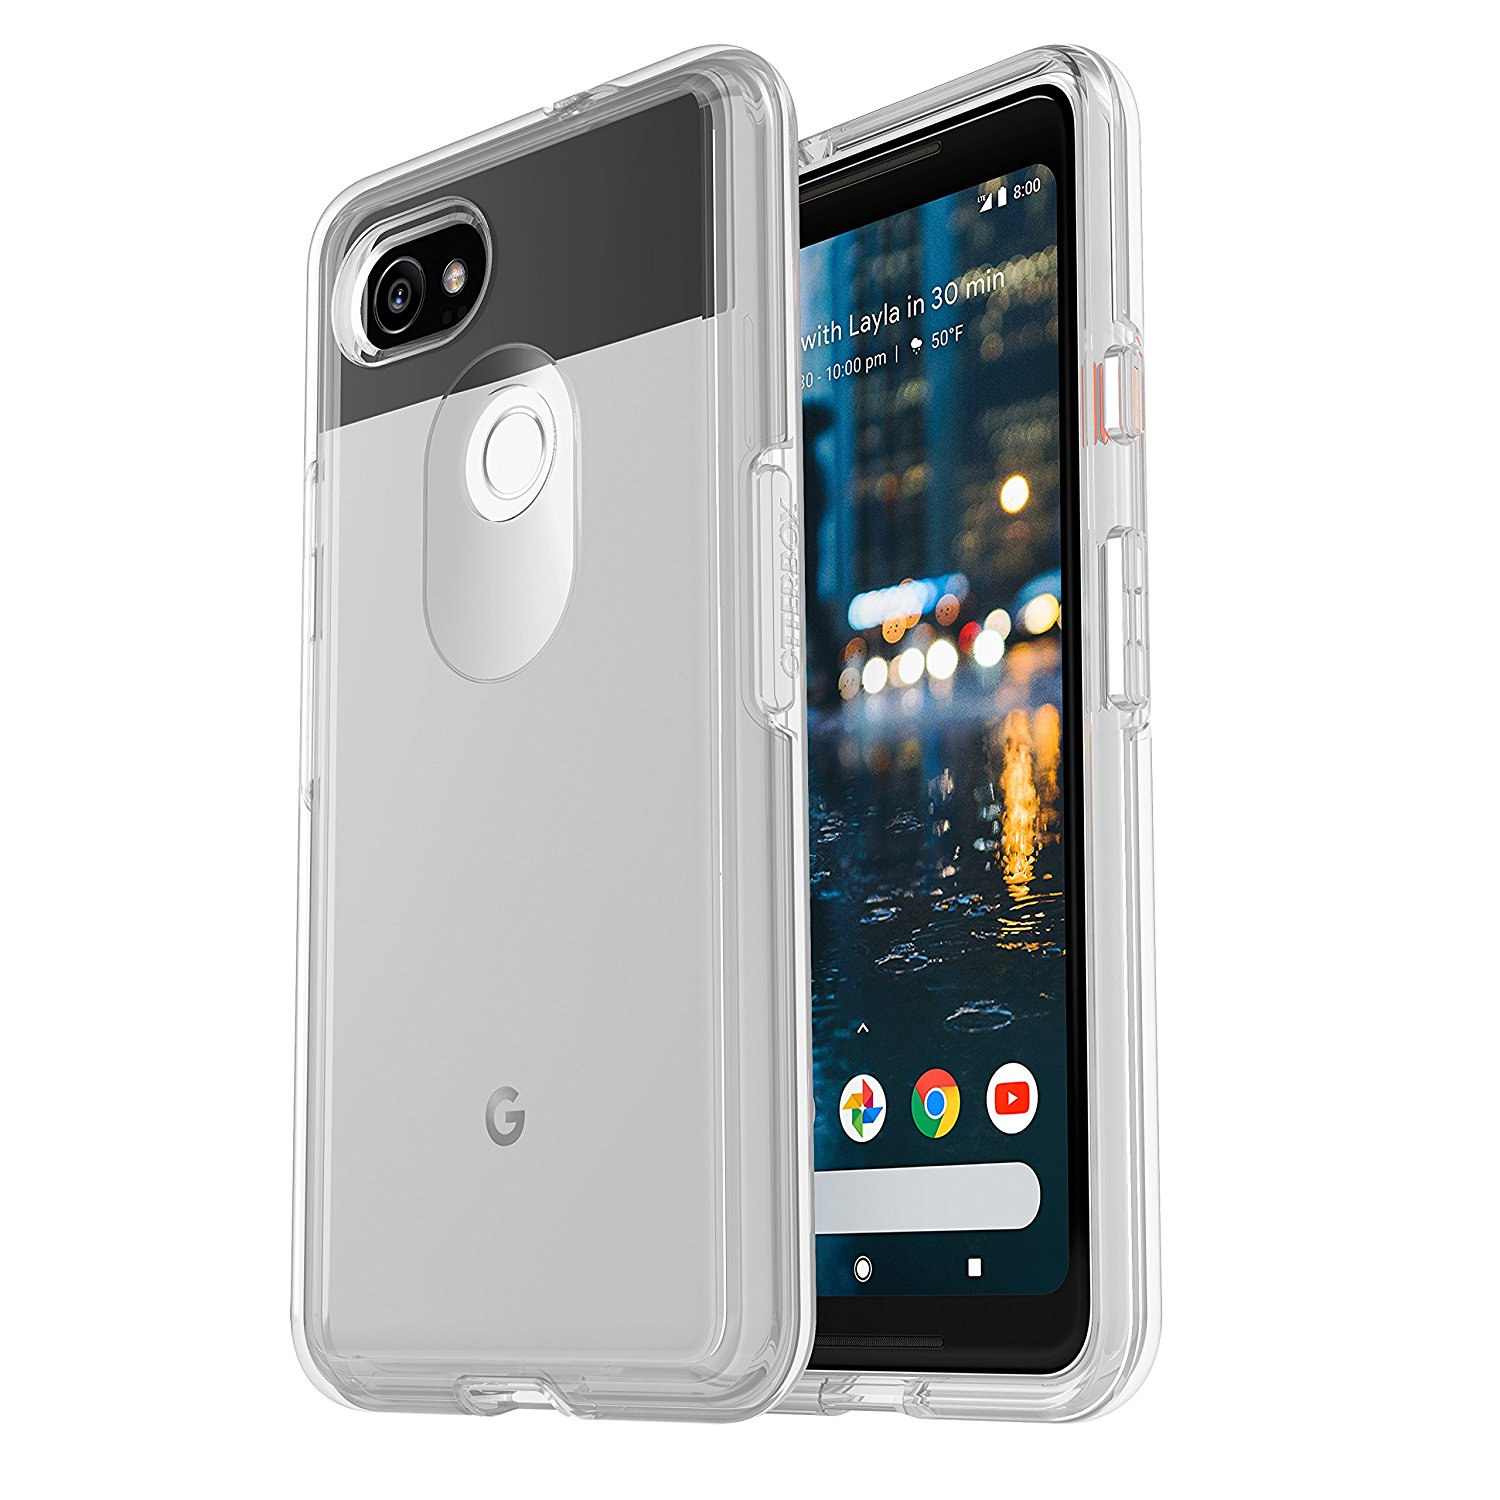 newest c92fa 6f1b1 Details about OtterBox Symmetry Clear Series Protective Case for Google  Pixel 2 XL - Clear